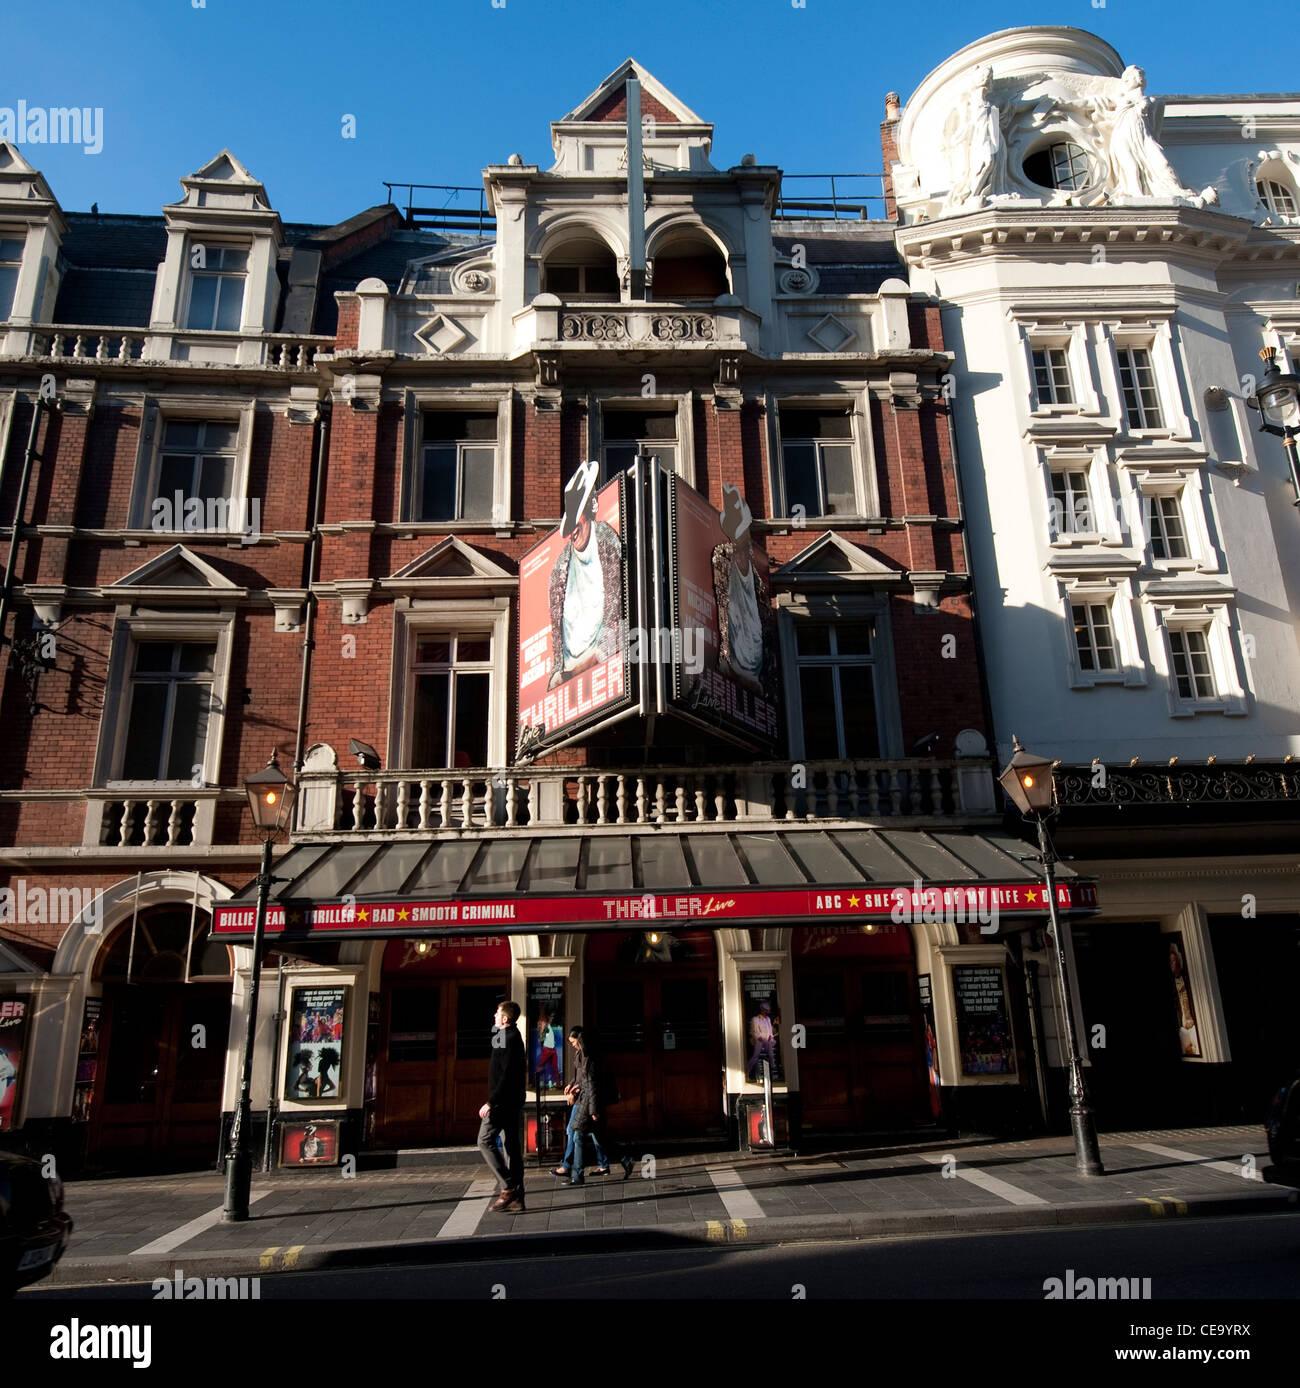 Shaftesbury Avenue, Theatreland London Theatres - Stock Image